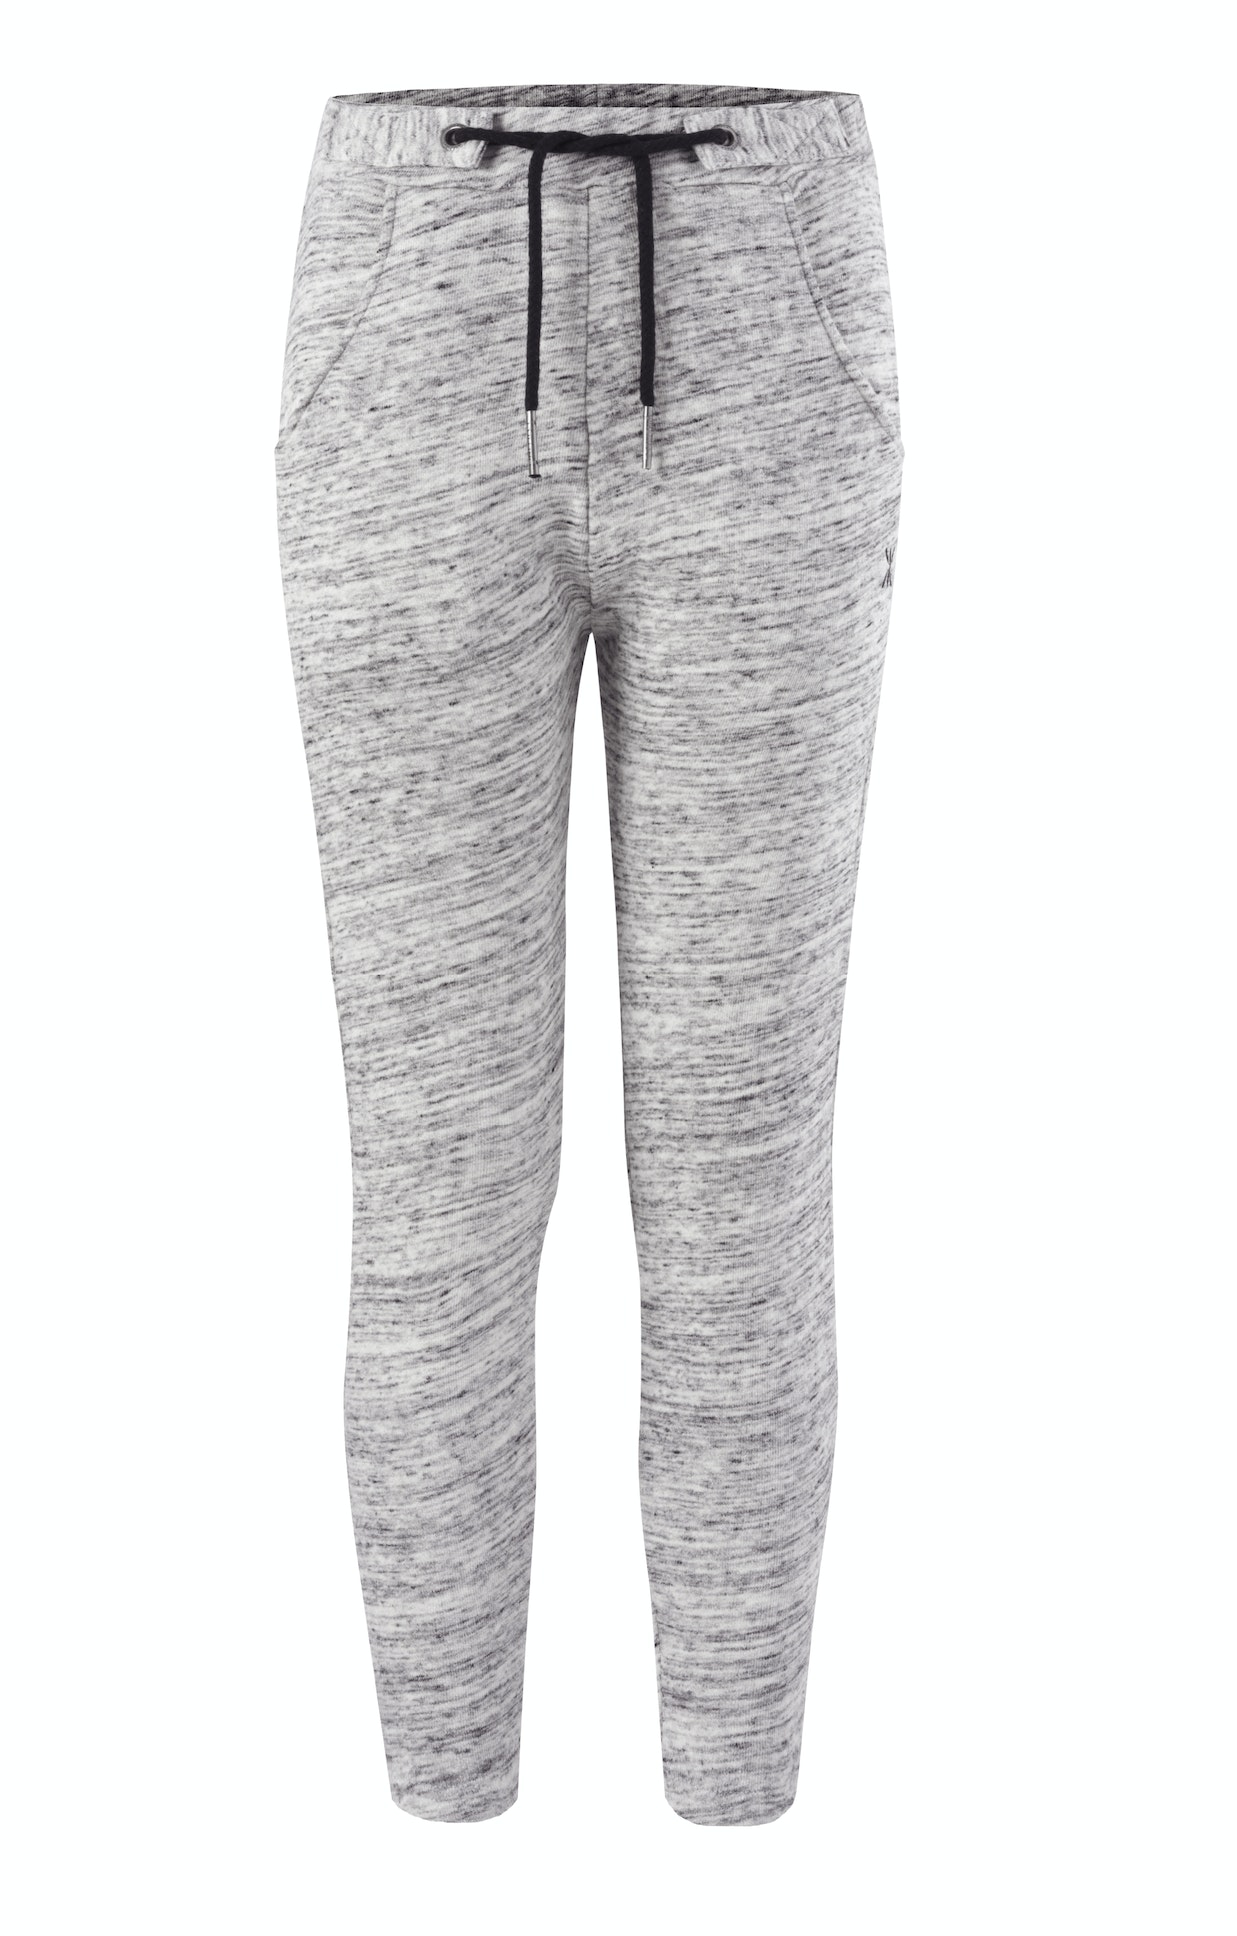 Whatever Pants Heavy Grey Melange Grey drop crotch womens jogger pant with loose fit in premium soft cotton.